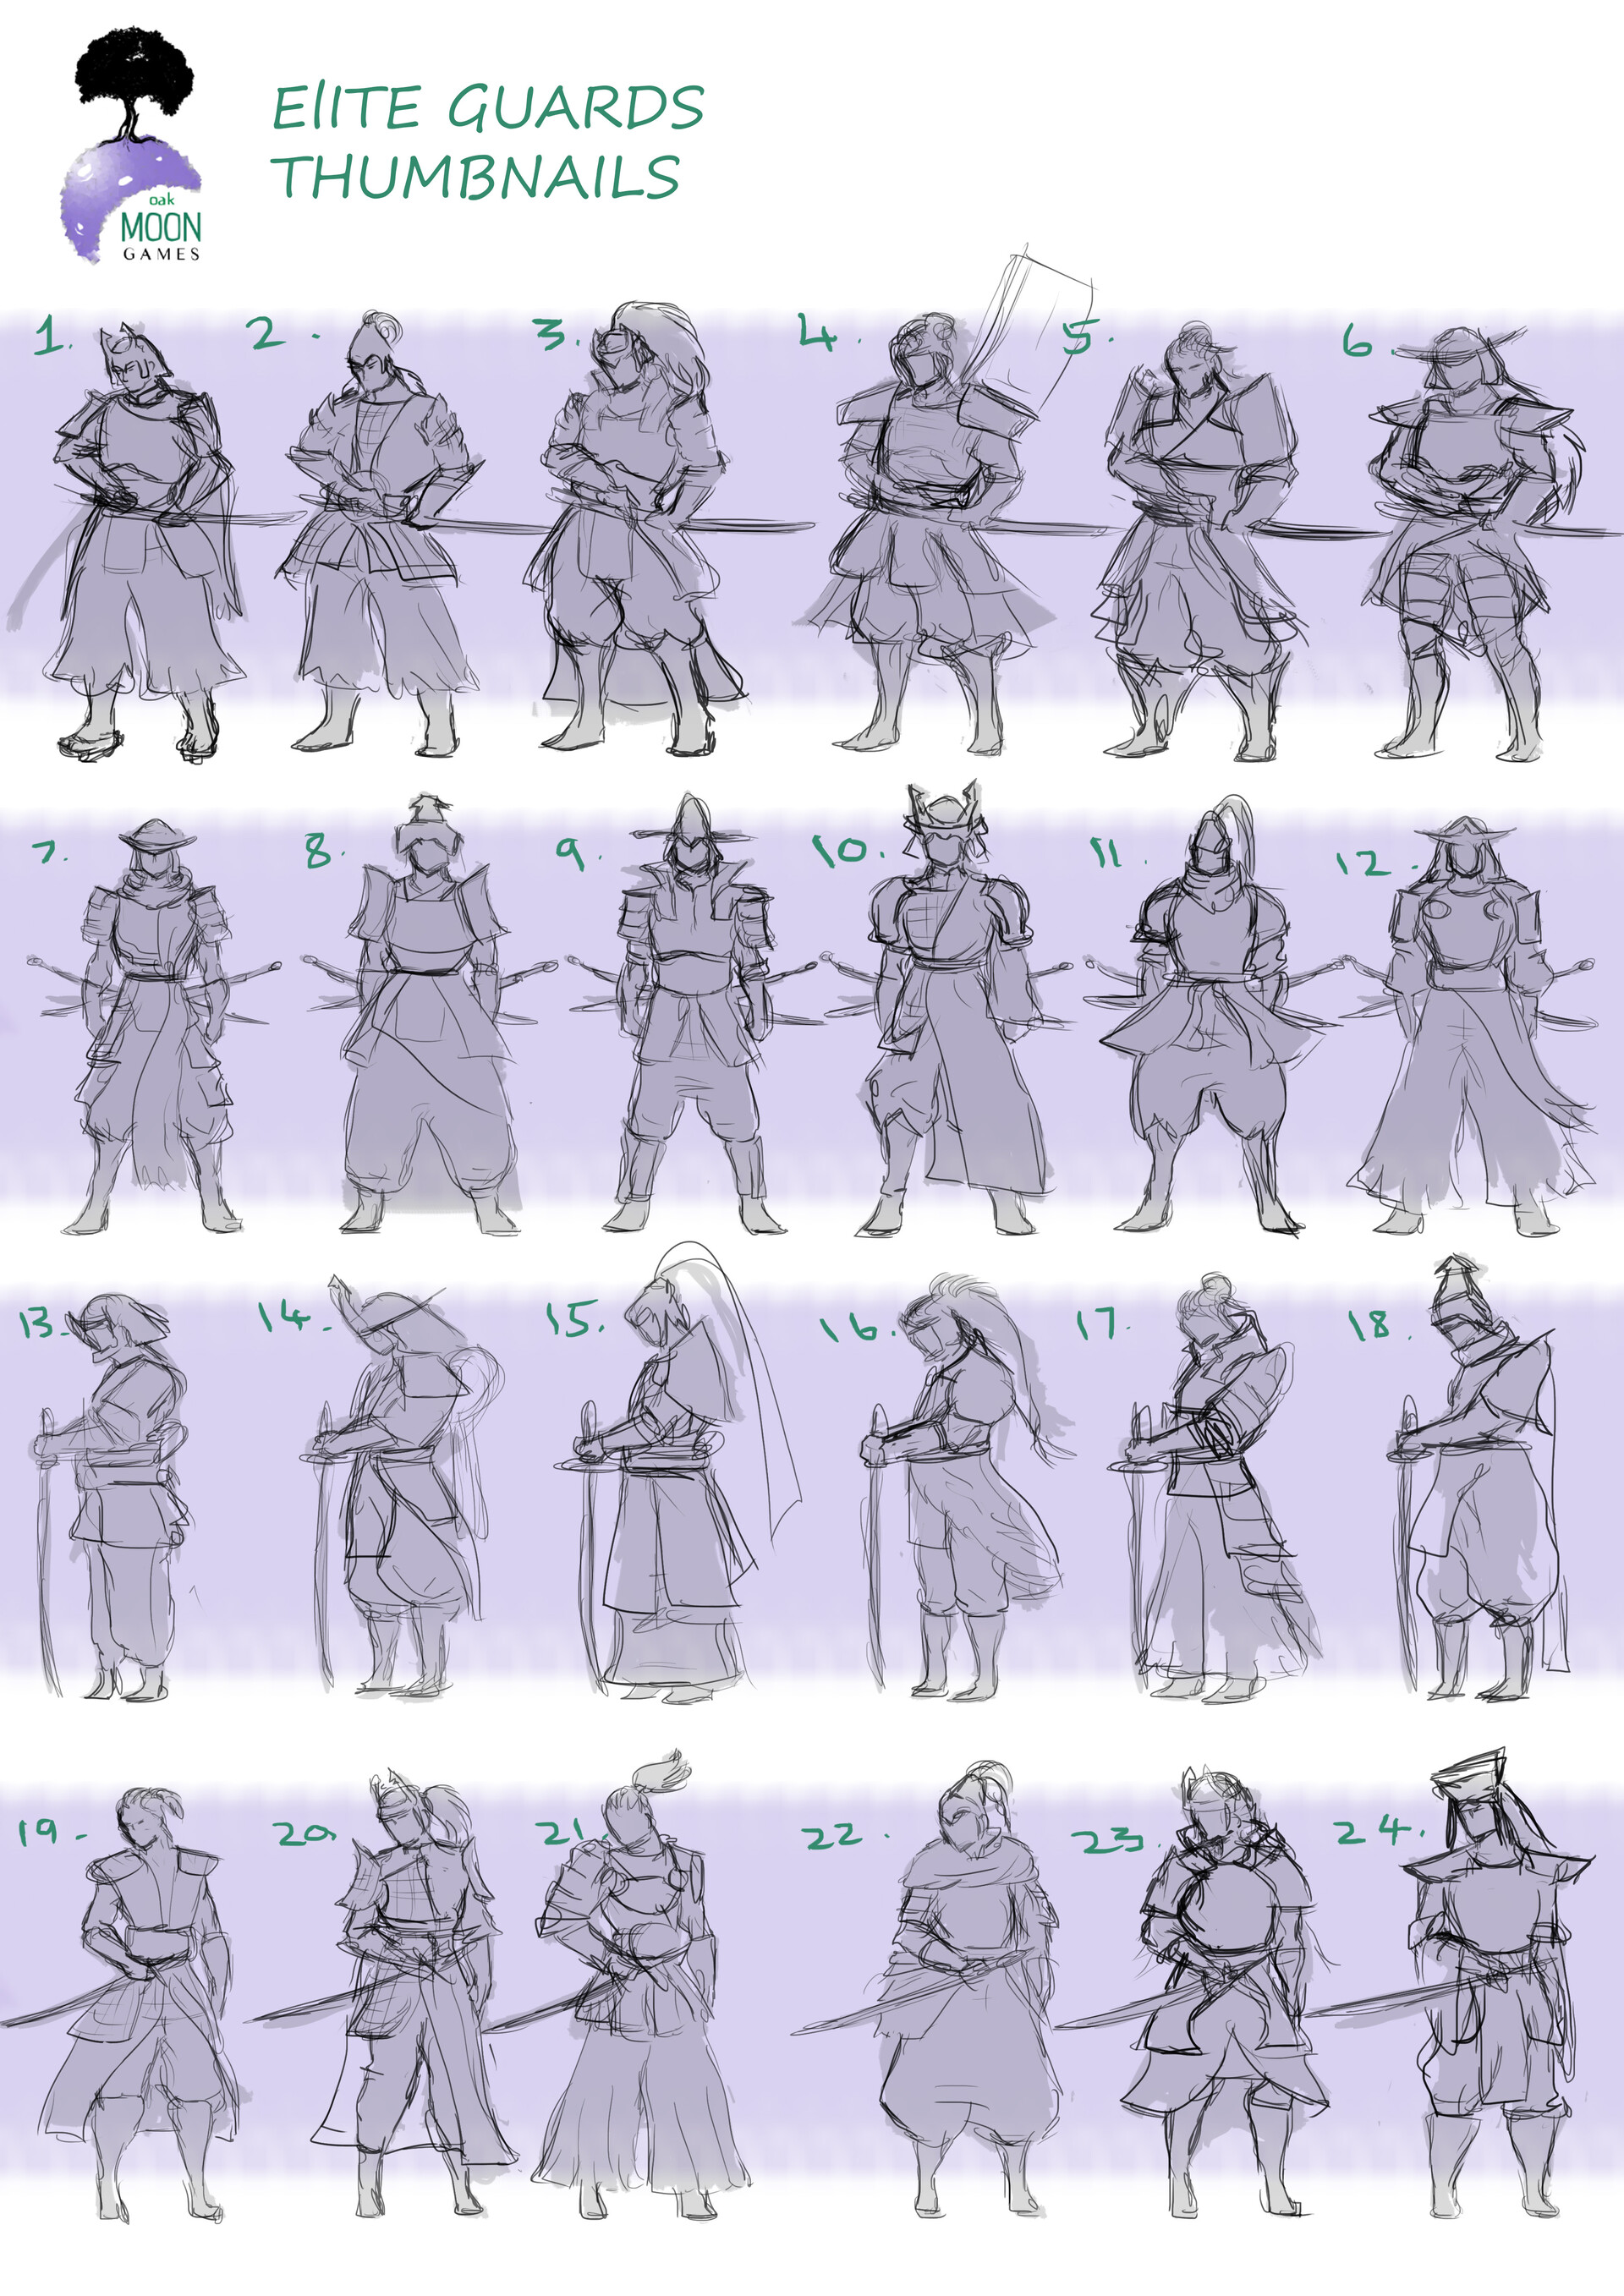 Thumbnail sketches for elite guards